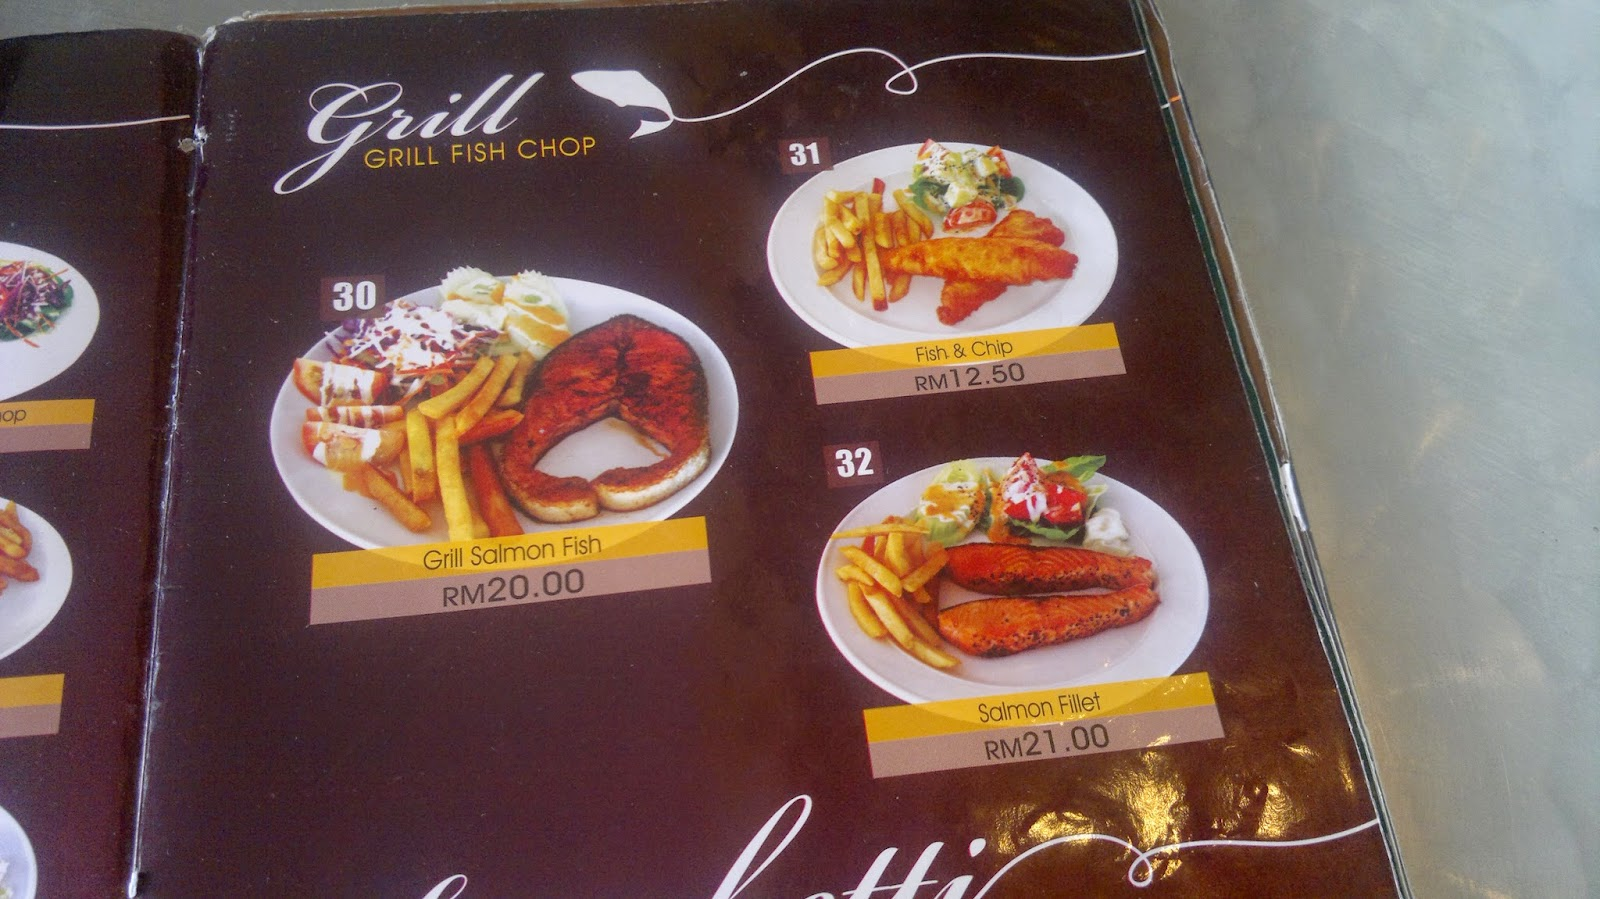 Strawberry Cafe Sitiawan Menu